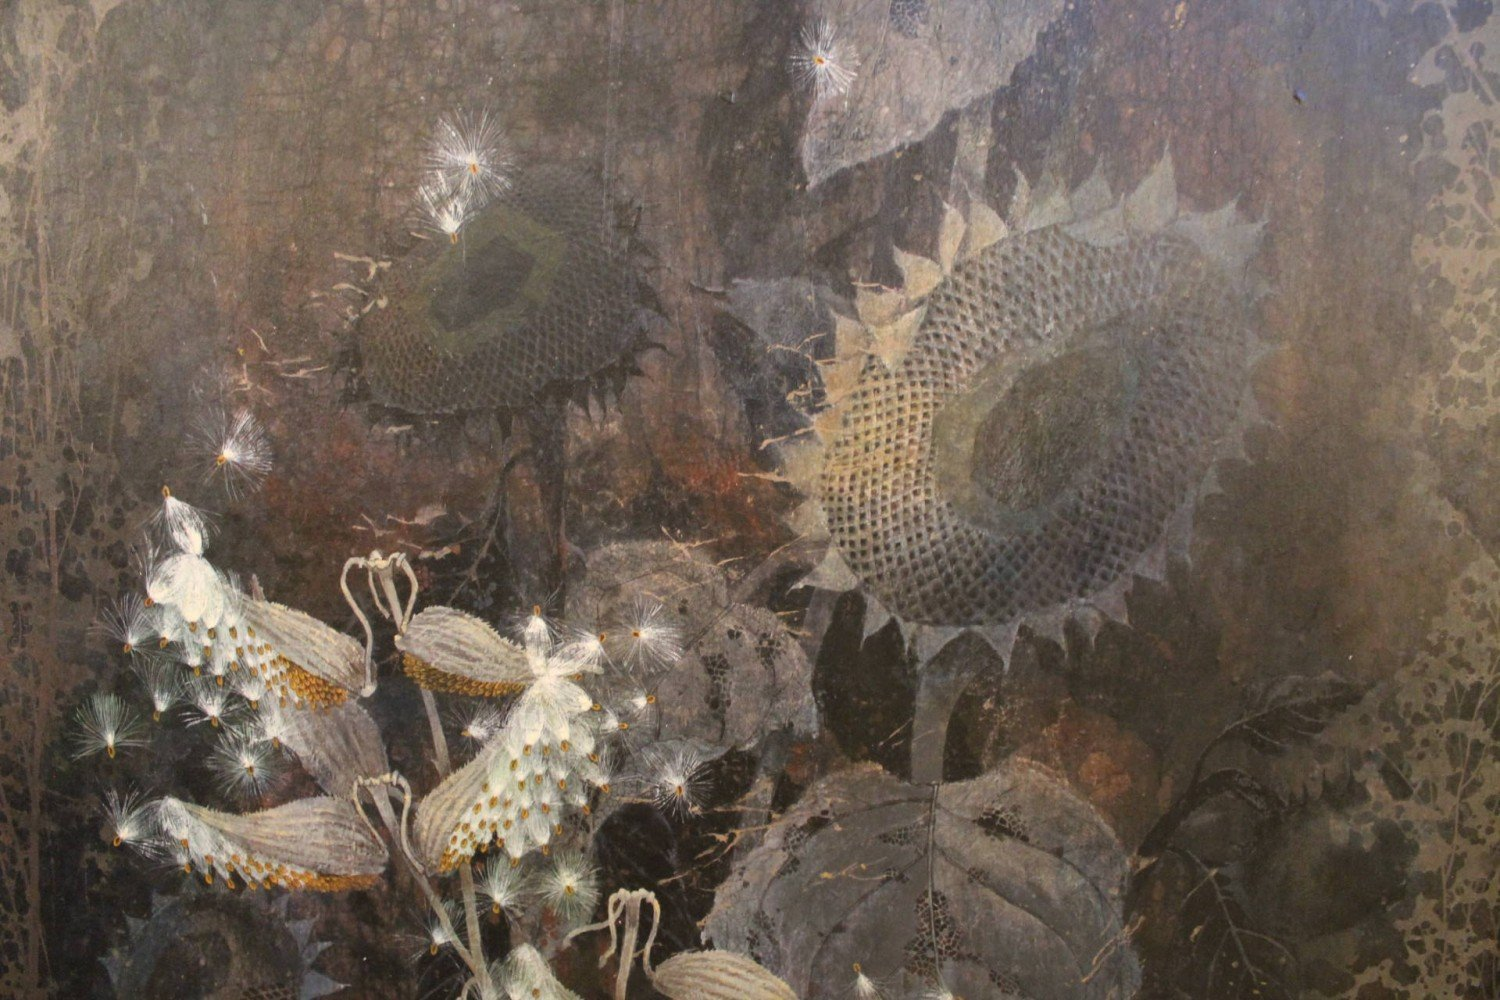 Still Life with Sunflowers and Milkweed Pods by Robert H. Laessig